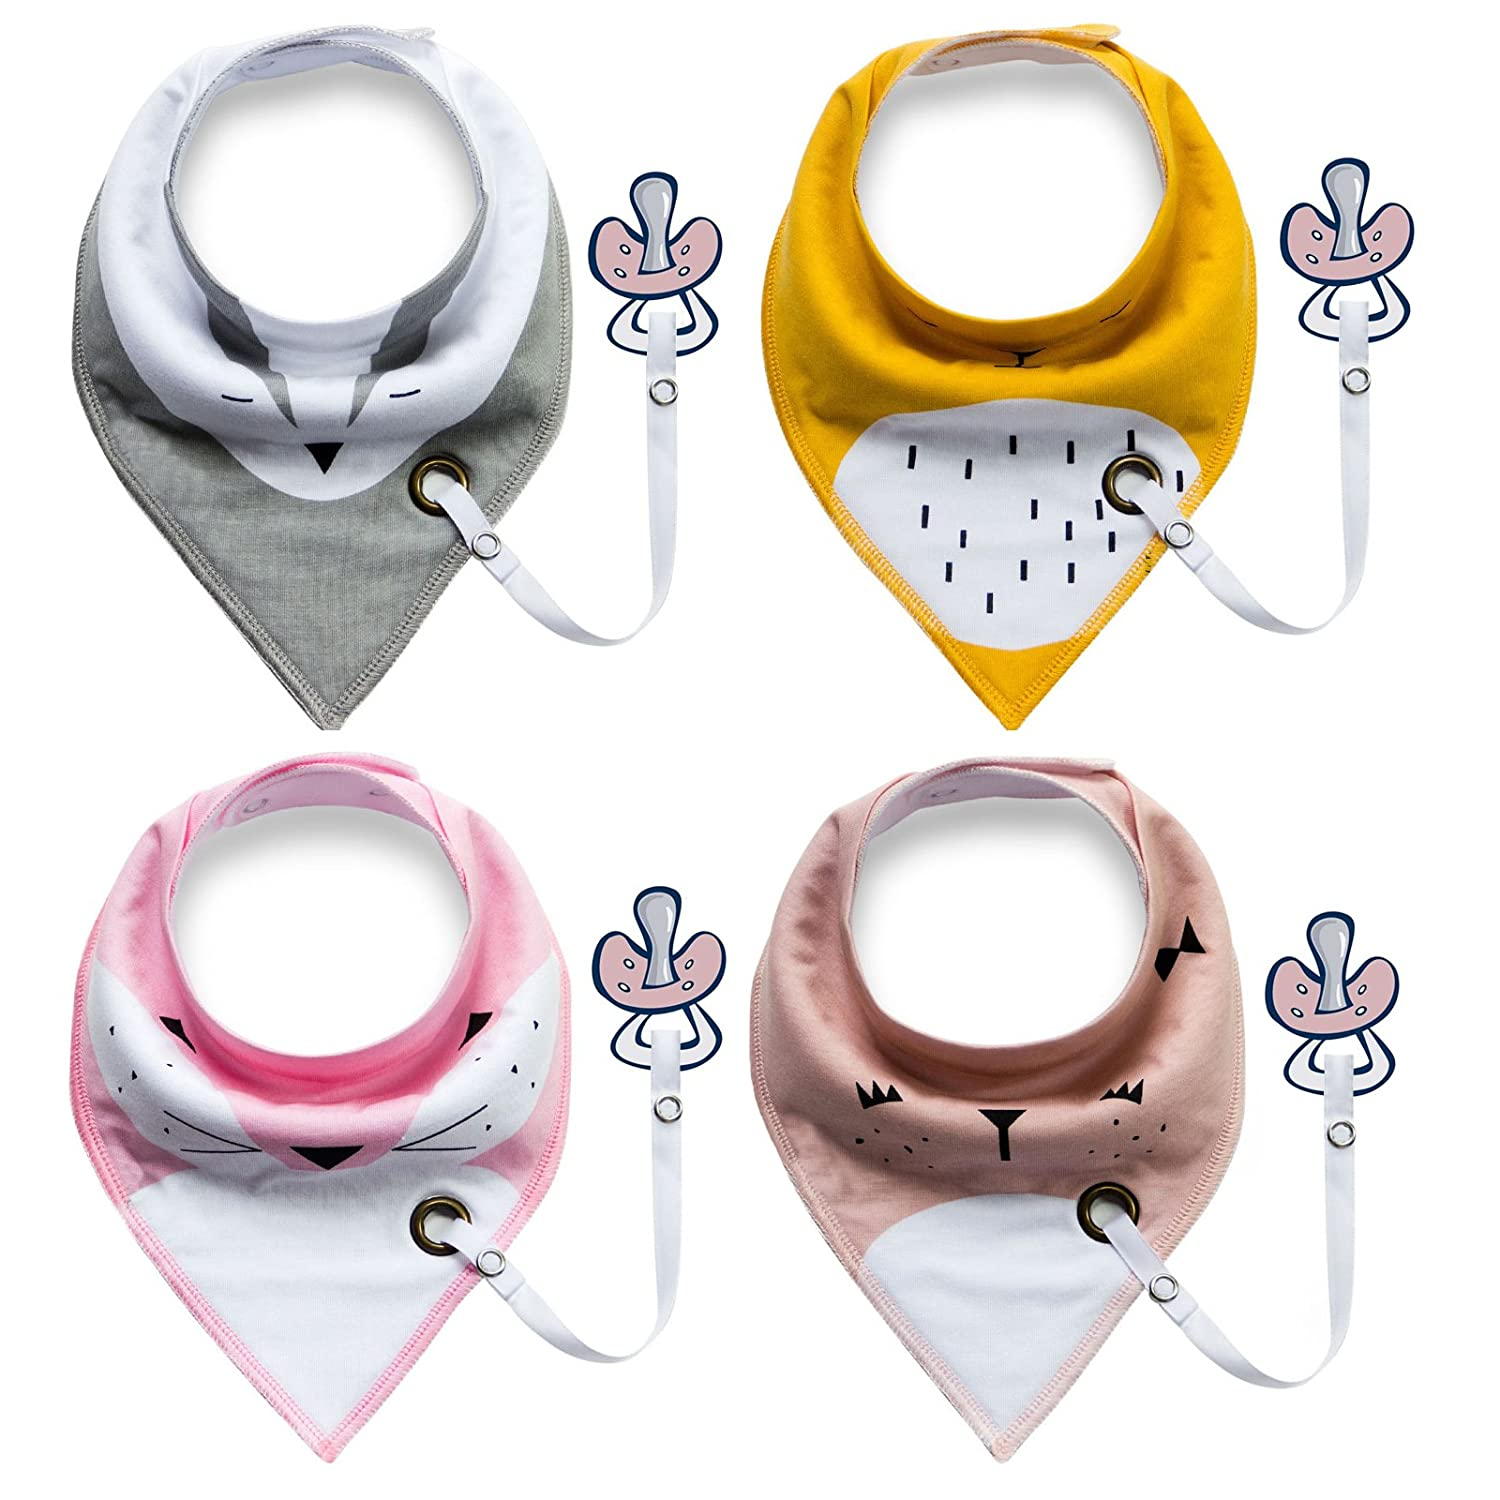 4-Pack Unisex Baby Toddlers Bandana Drool Bibs with Snaps Soft Organic Cotton Unique Shower Gift Set Super Absorbent for Teething Feeding Fashion Adjustable with Pacifier Clip MY007G